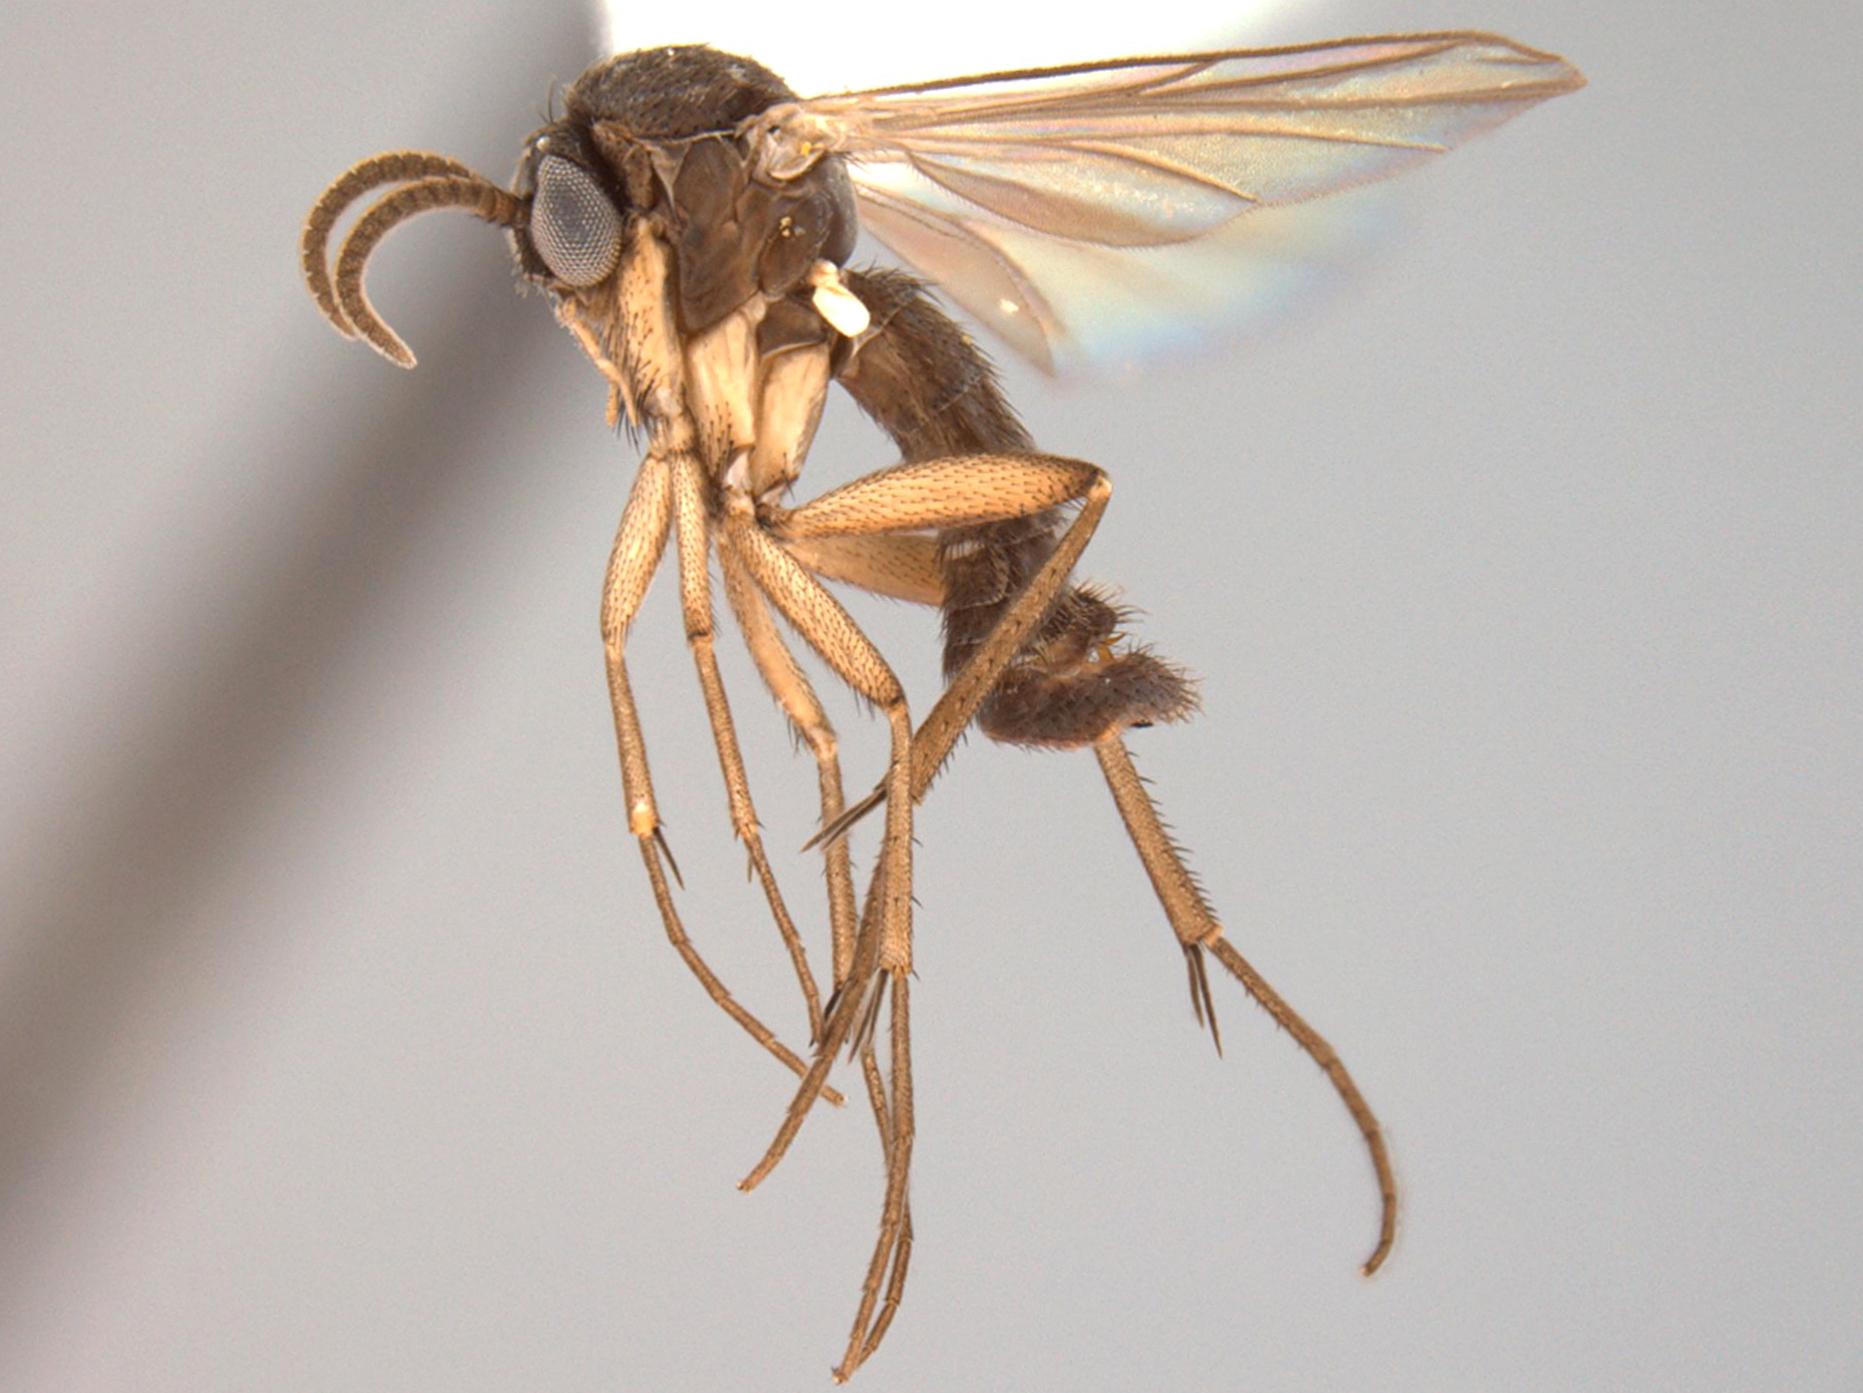 Peter Kerr named his newly discovered gnat after his climate hero, Bill McKibben.